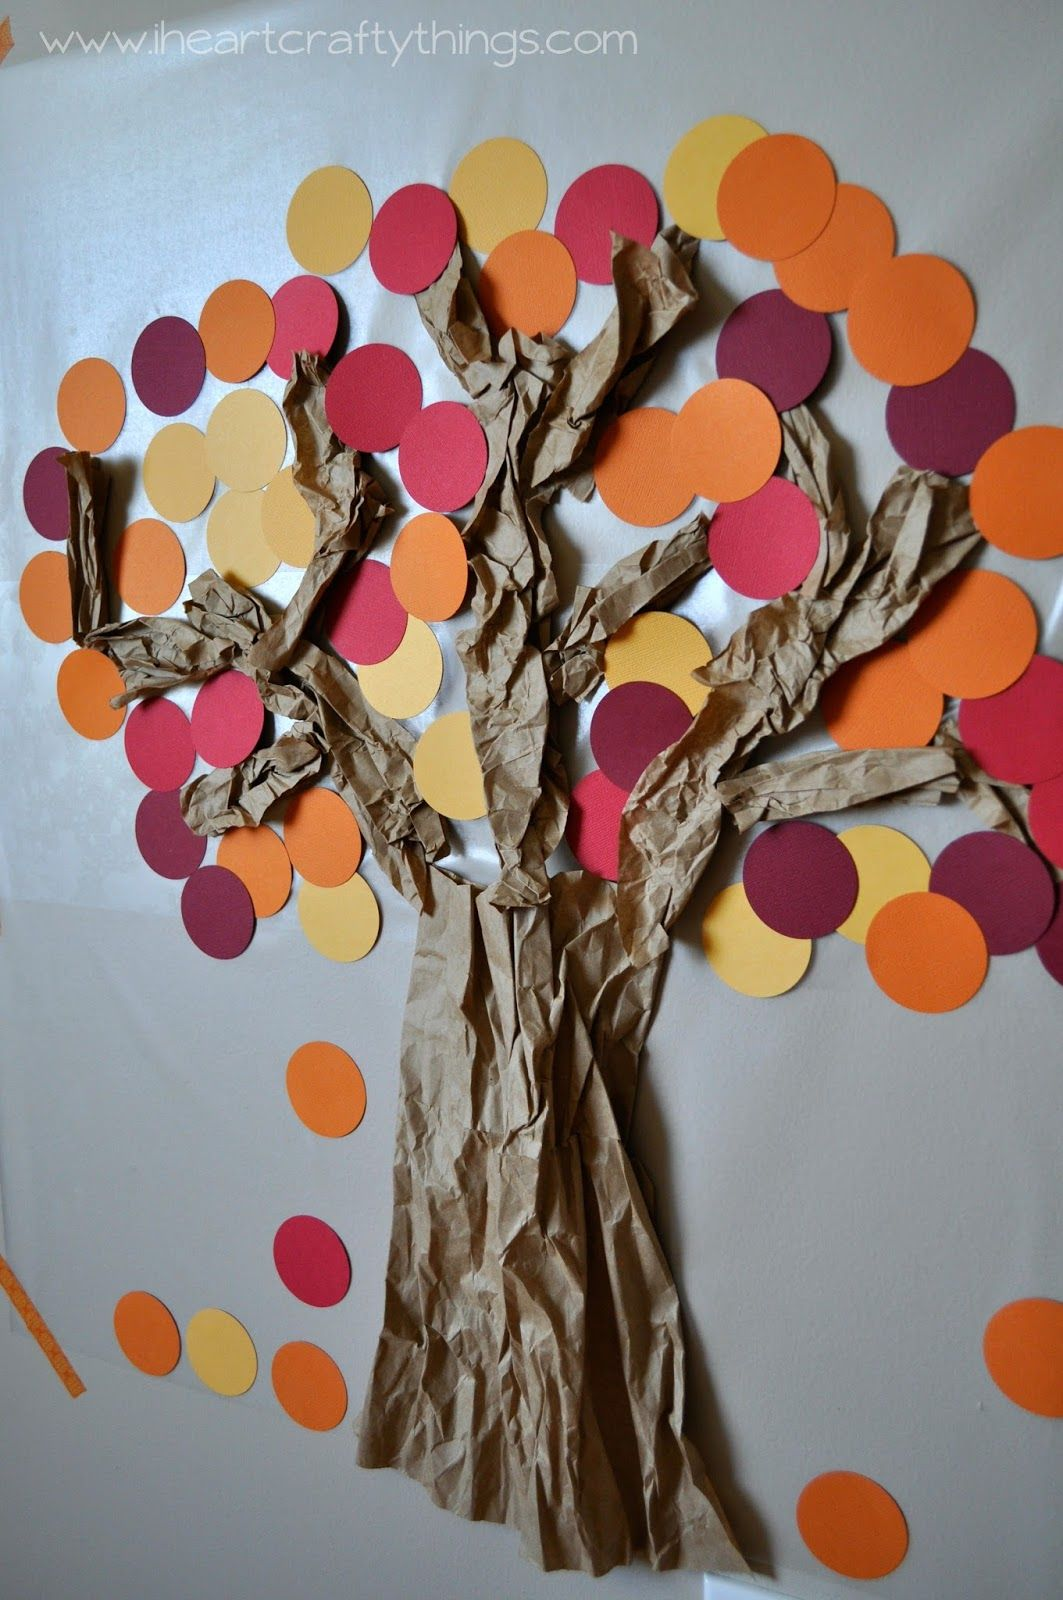 Contact Paper Sticky Wall Fall Tree Fall Crafts Fall Crafts For Kids Fall Crafts Diy